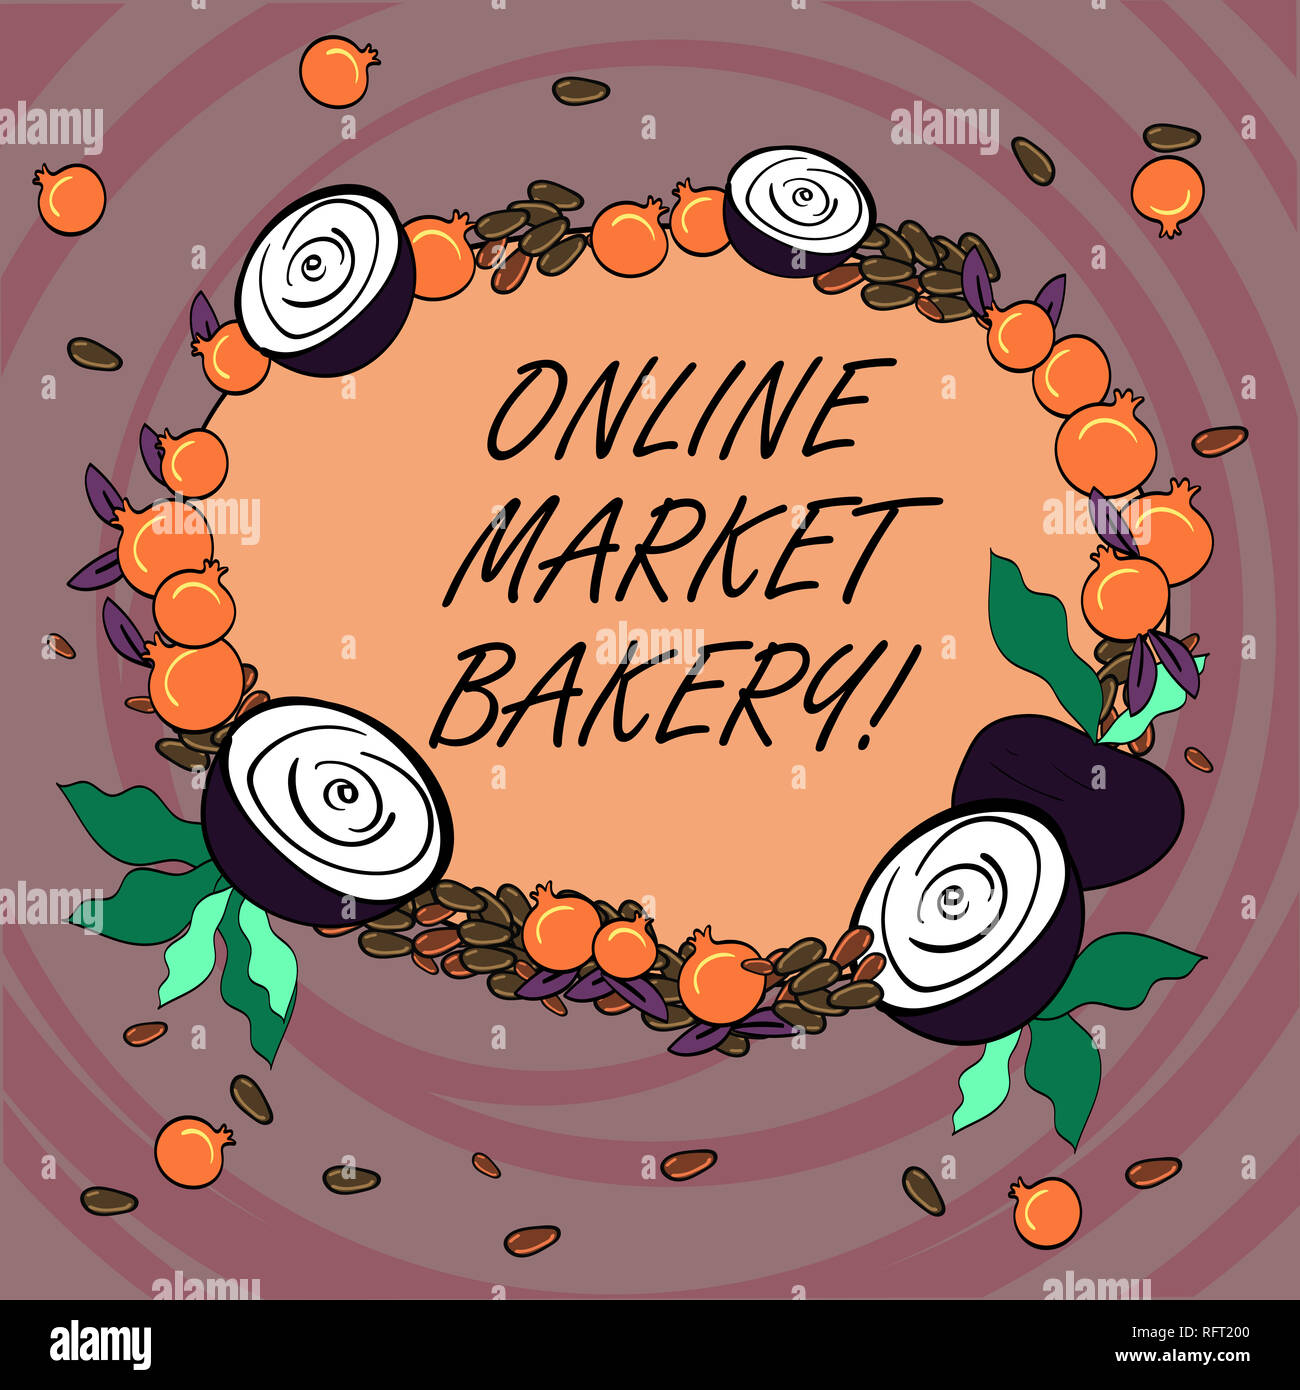 bf519a5bfe Writing note showing Online Market Bakery. Business photo showcasing  Produces and sells flourbased food baked in oven Floral Wreath made of Tiny  Seeds